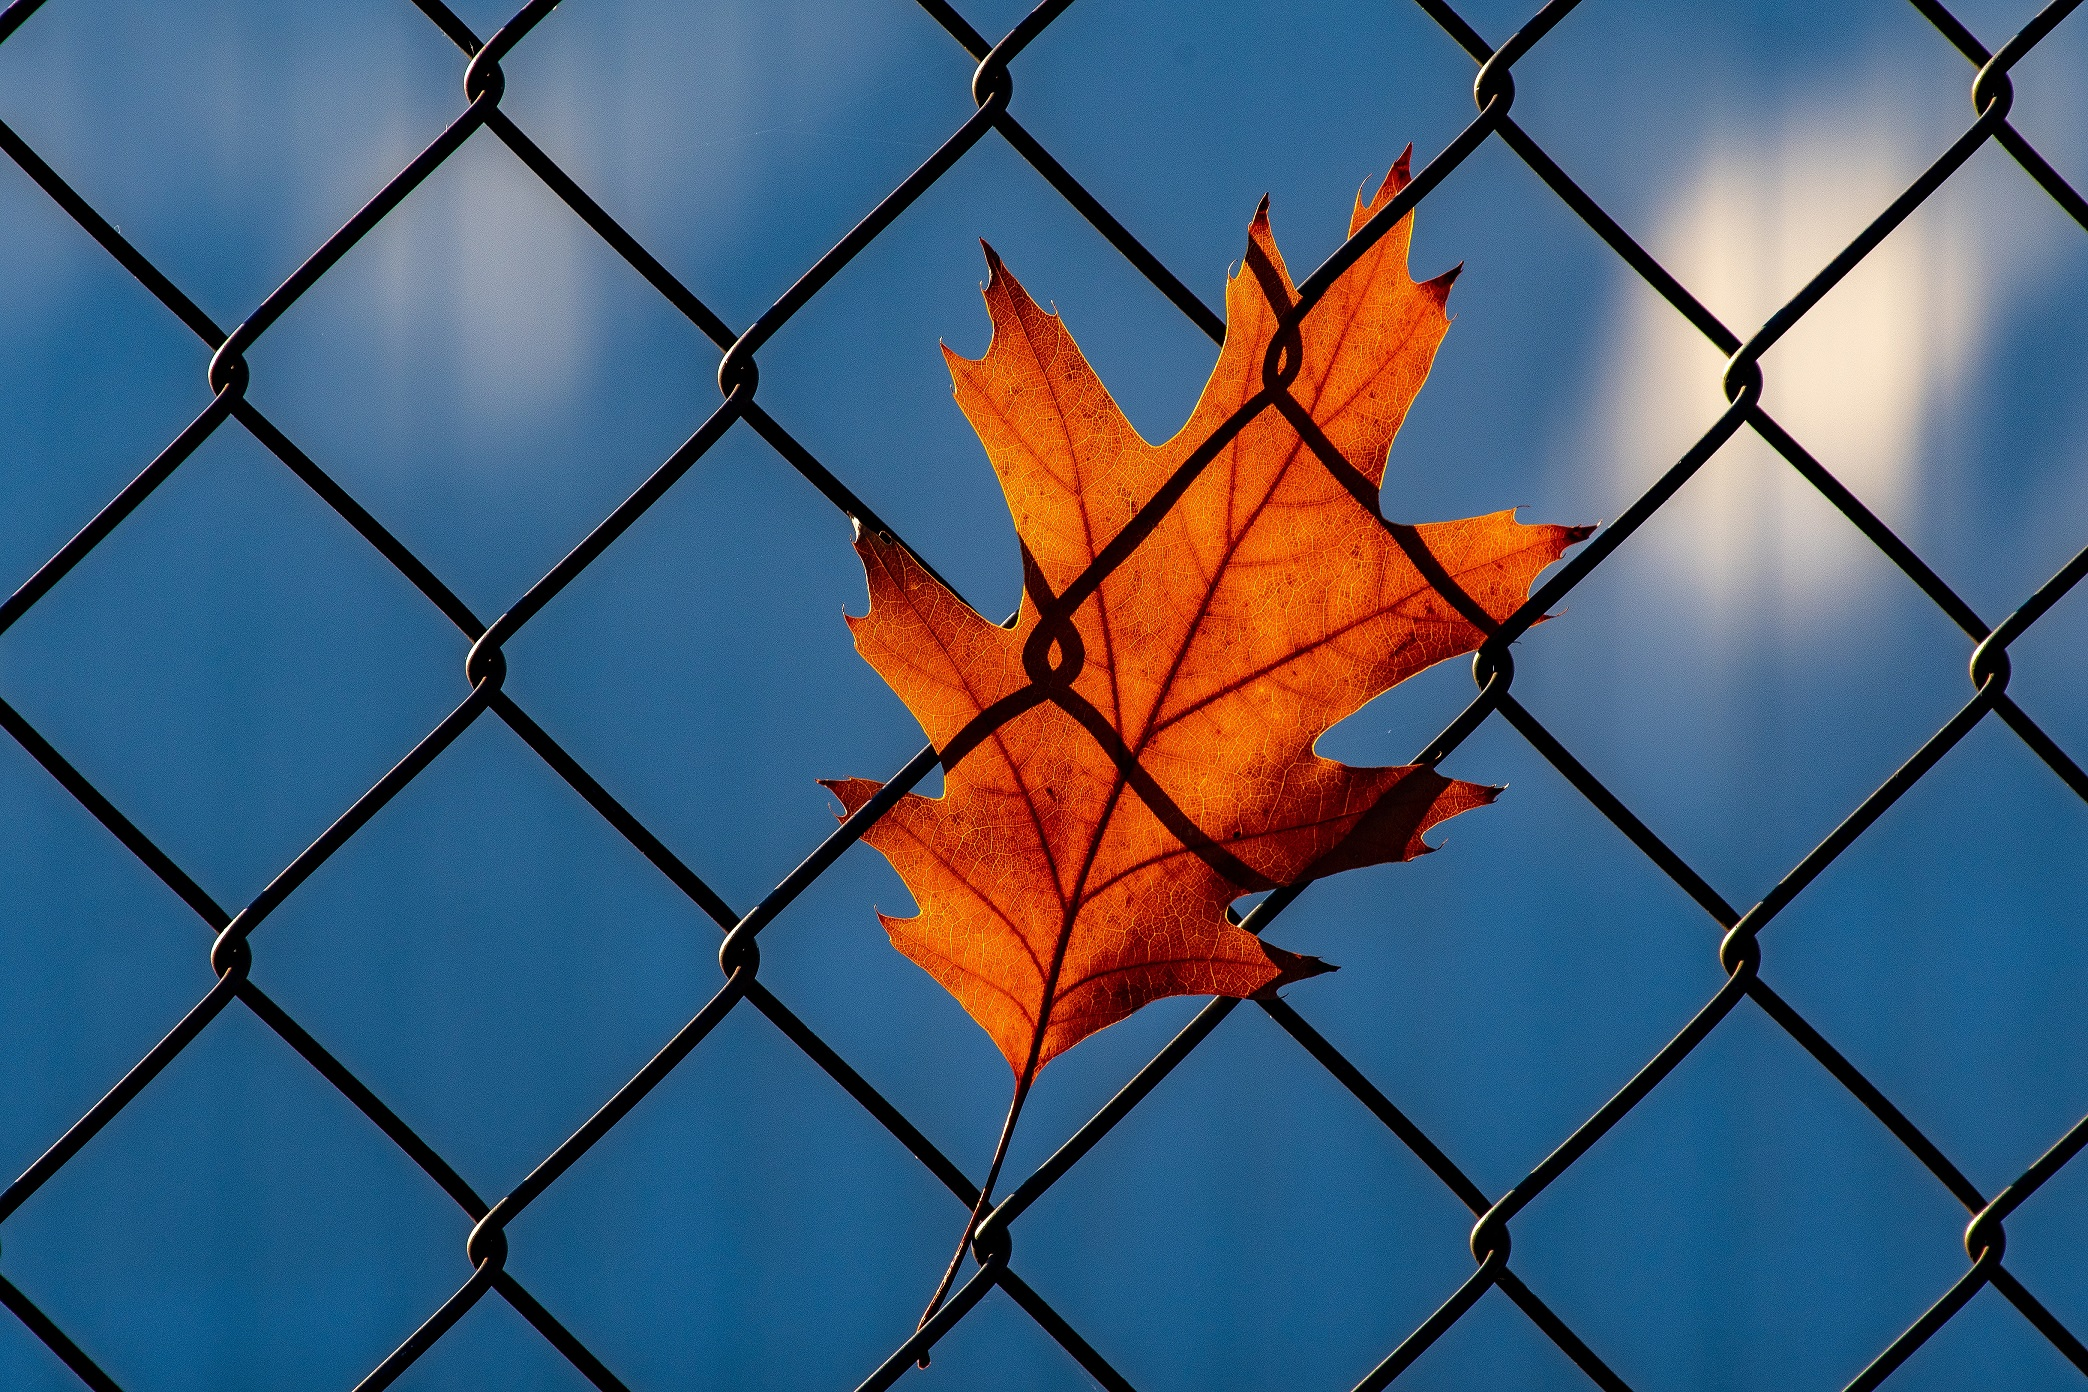 Leaf stuck in a fence, Incarceration vs Rehabilitation, Foundations Wellness Center, drug rehab